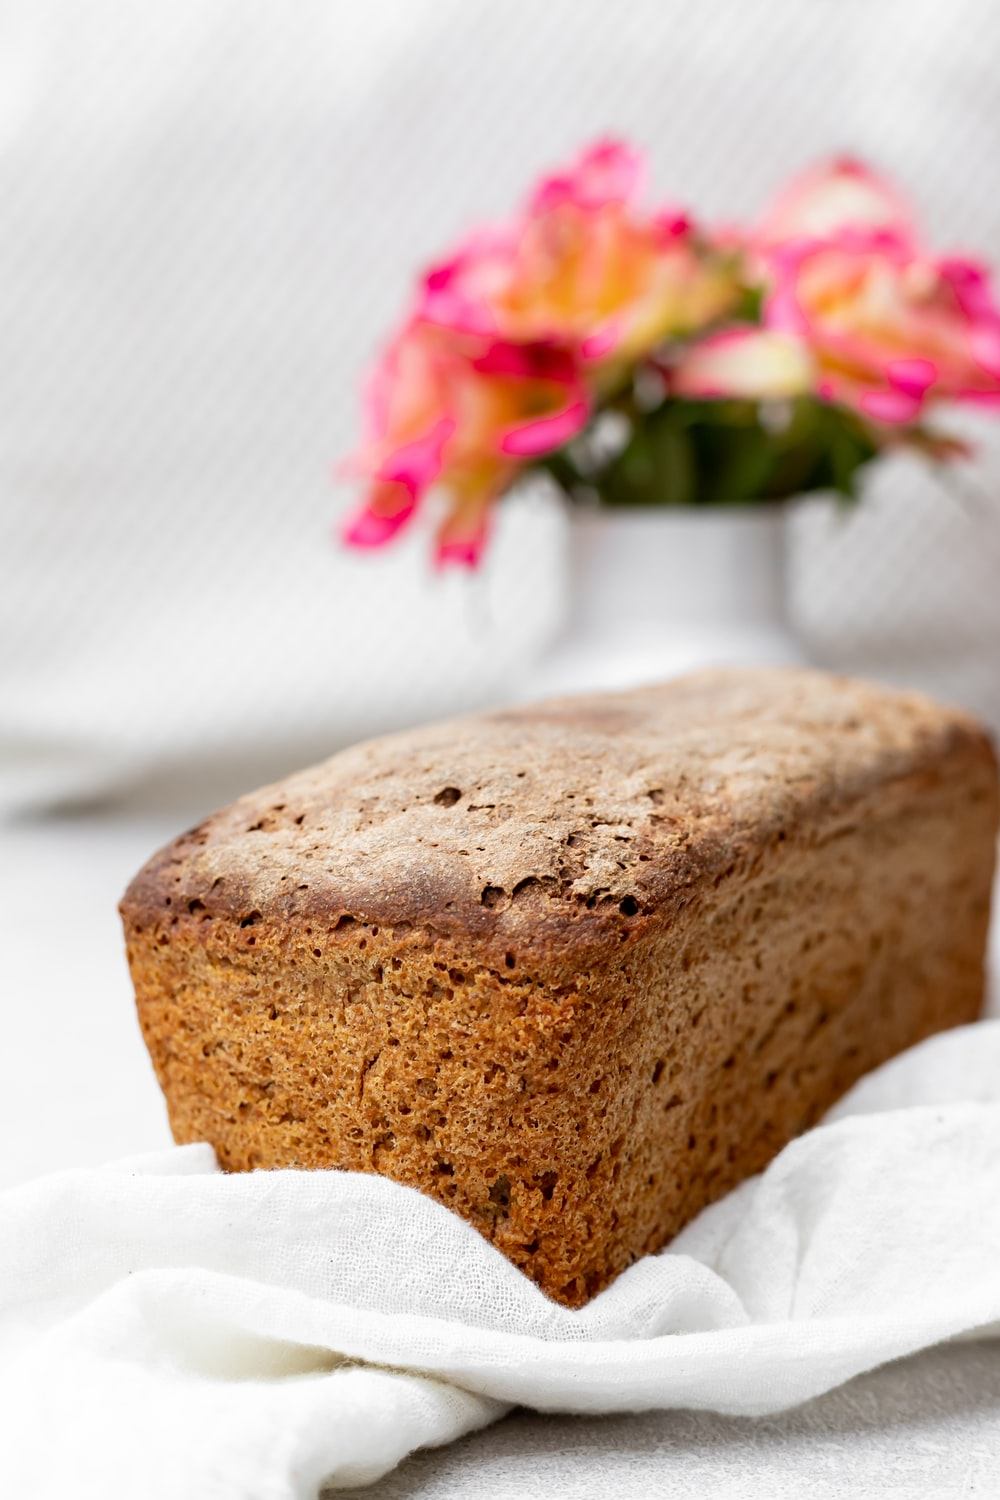 brown bread with pink and white flowers on white textile